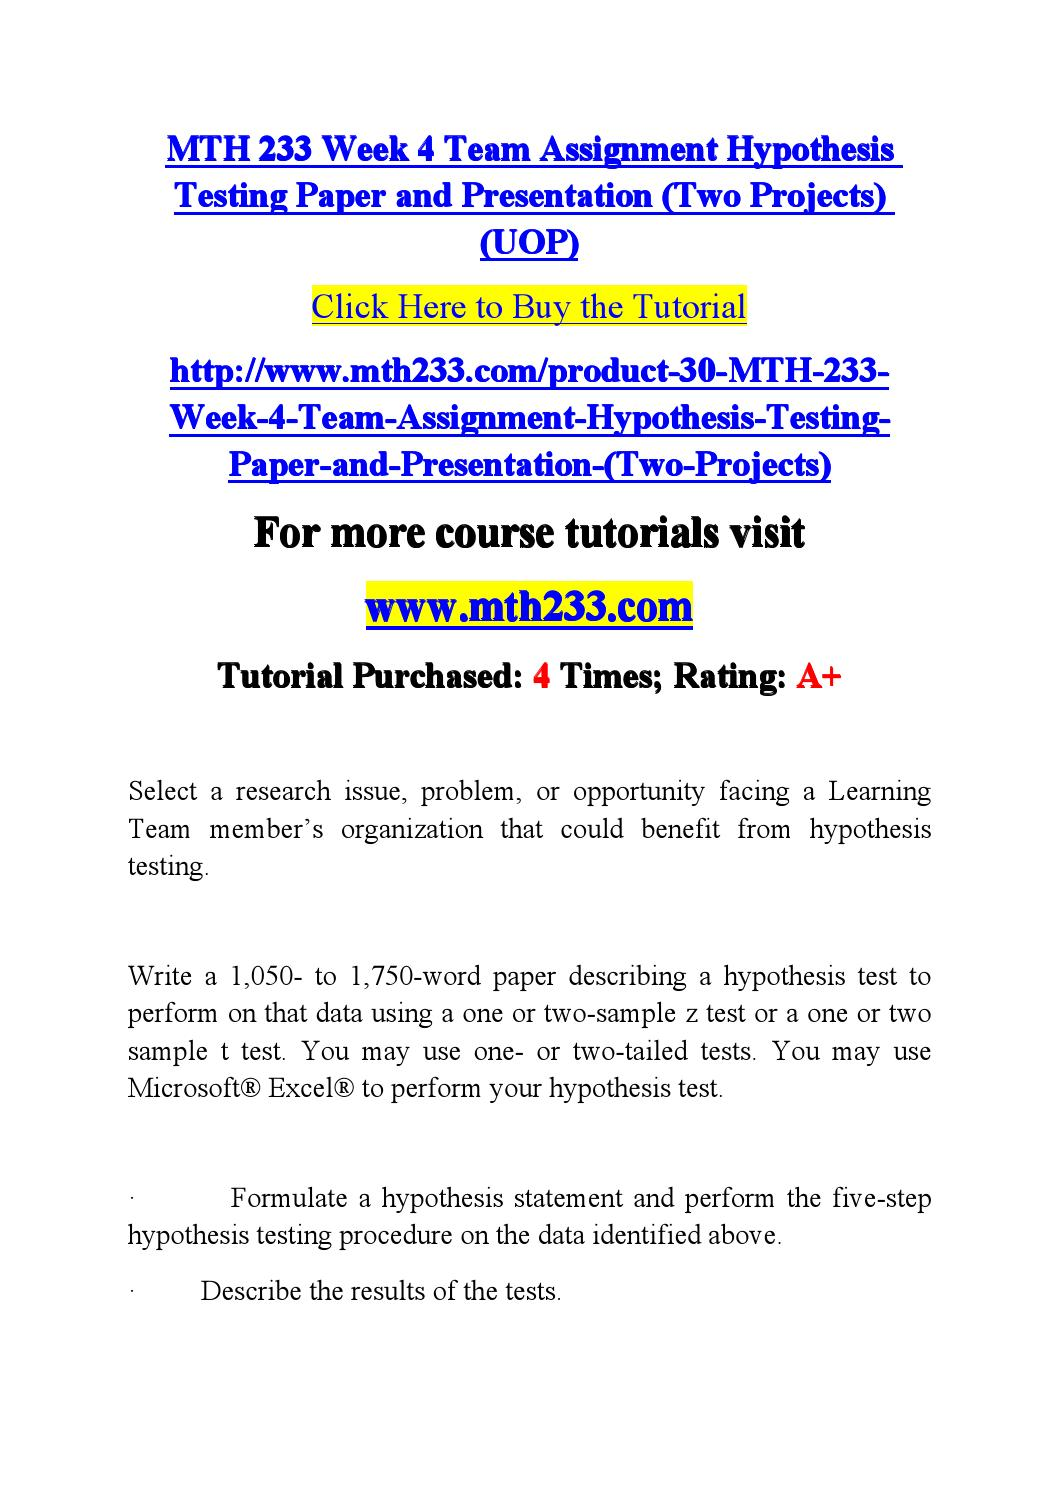 006 Research Paper Hypothesis Testing In Page 1 Awesome Pdf Full